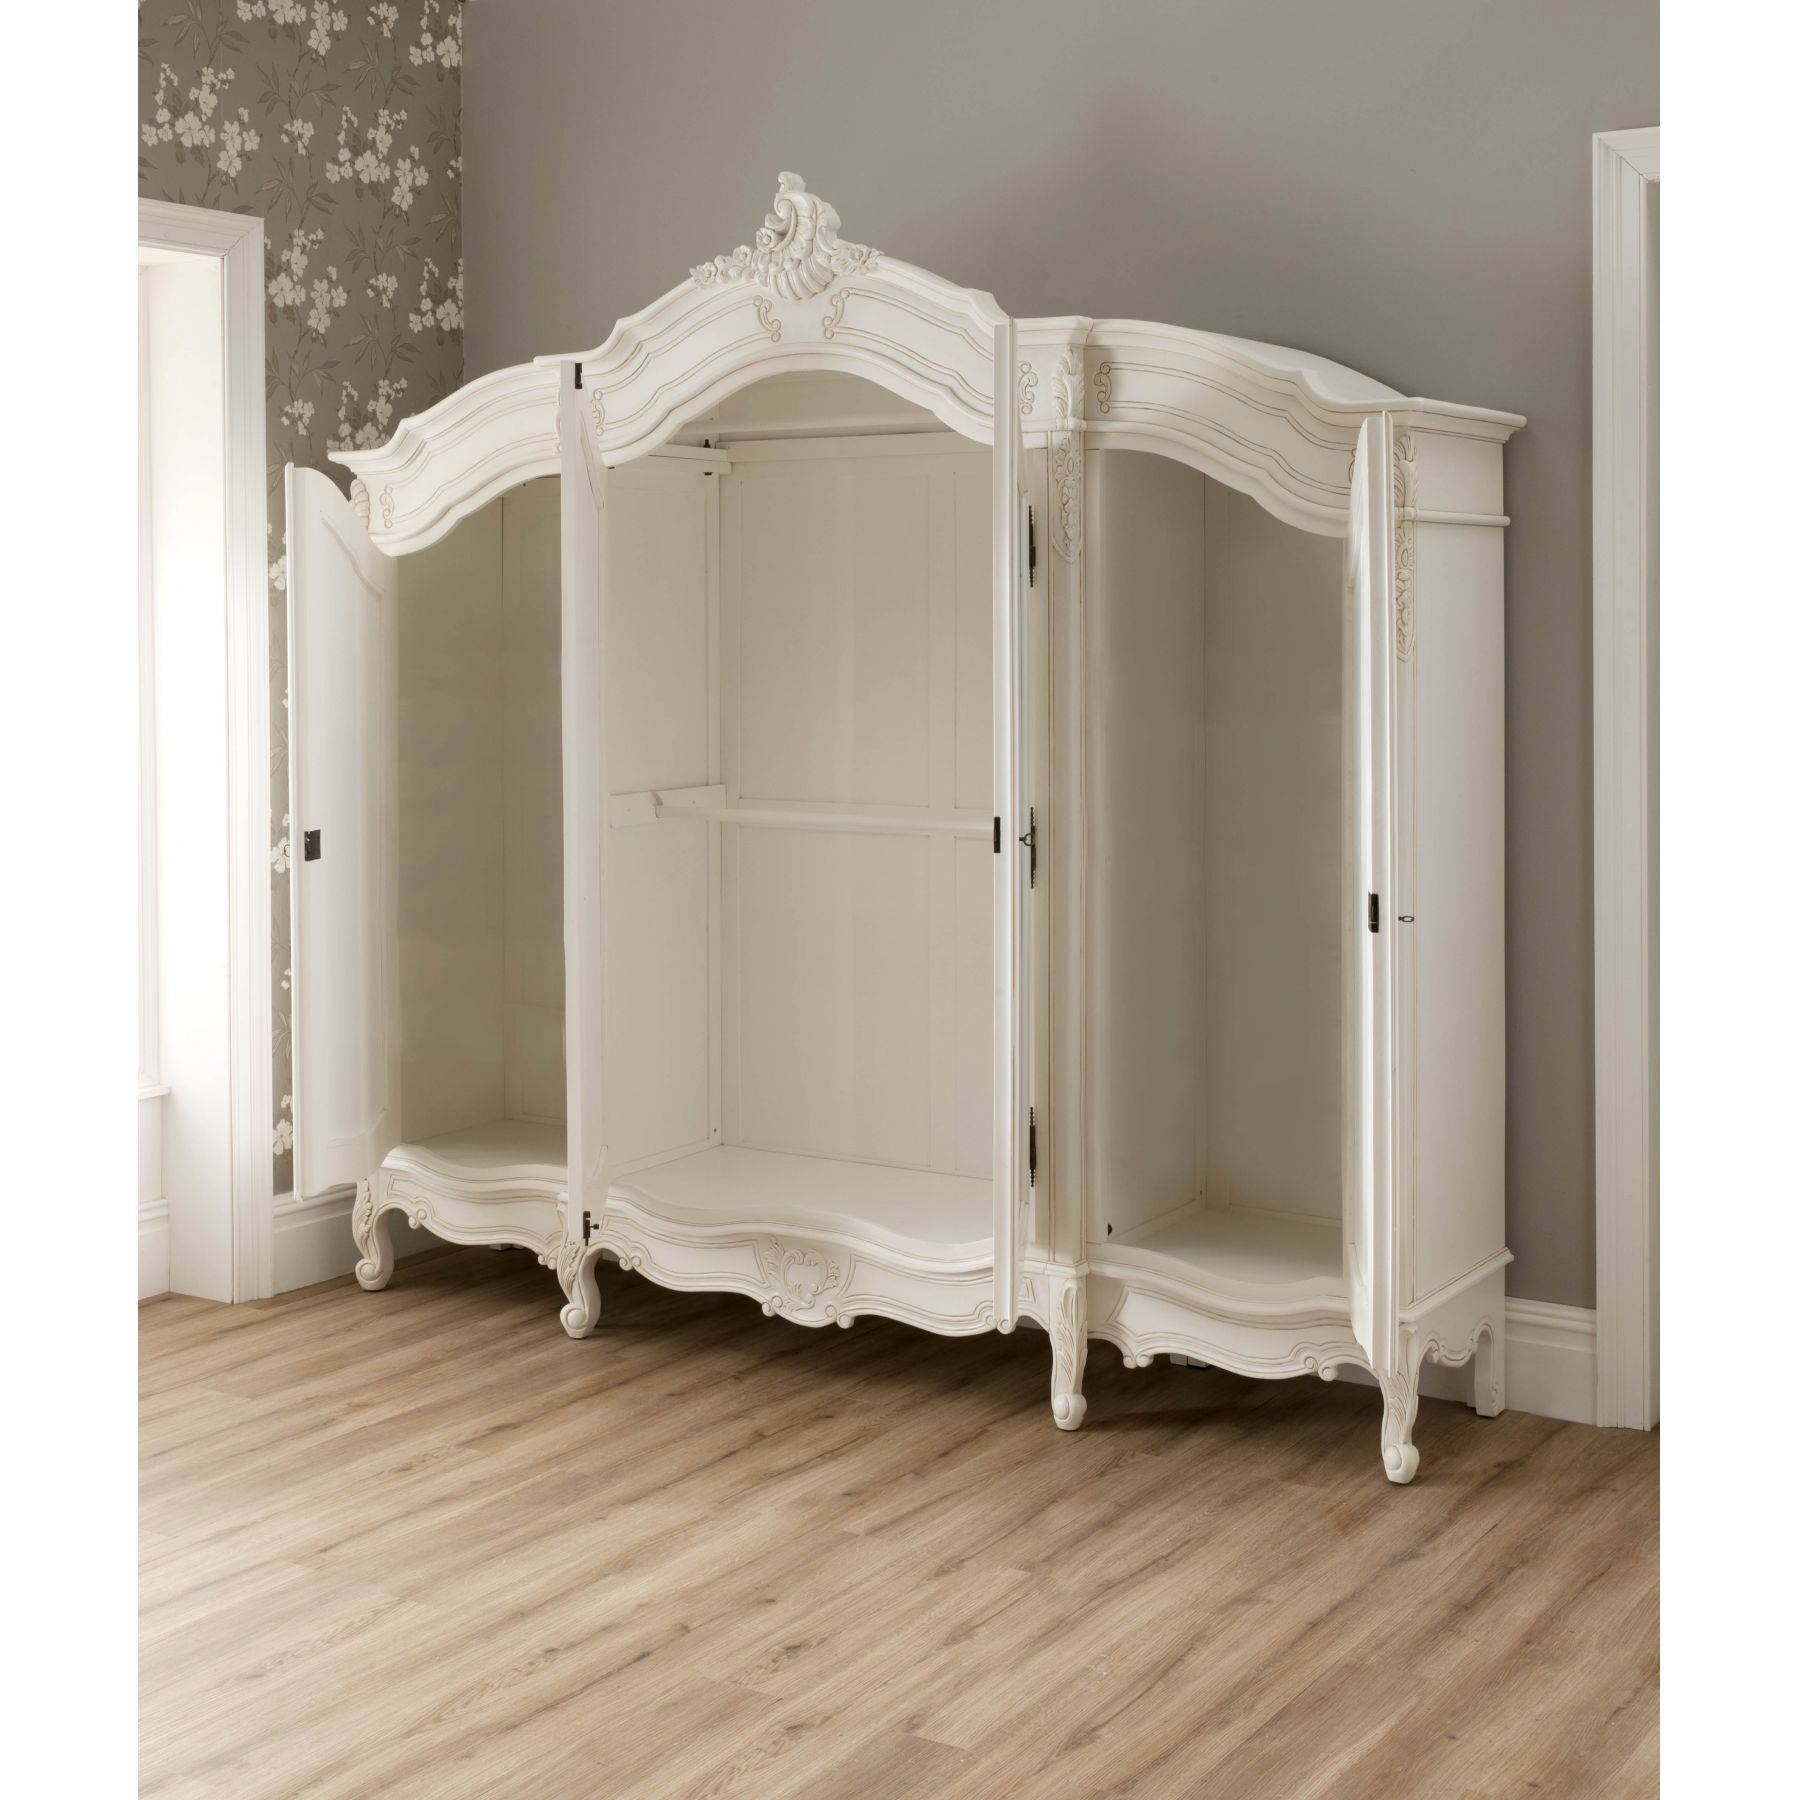 Rochelle 4 Door Antique French Wardrobe with Armoire French Wardrobes (Image 12 of 15)